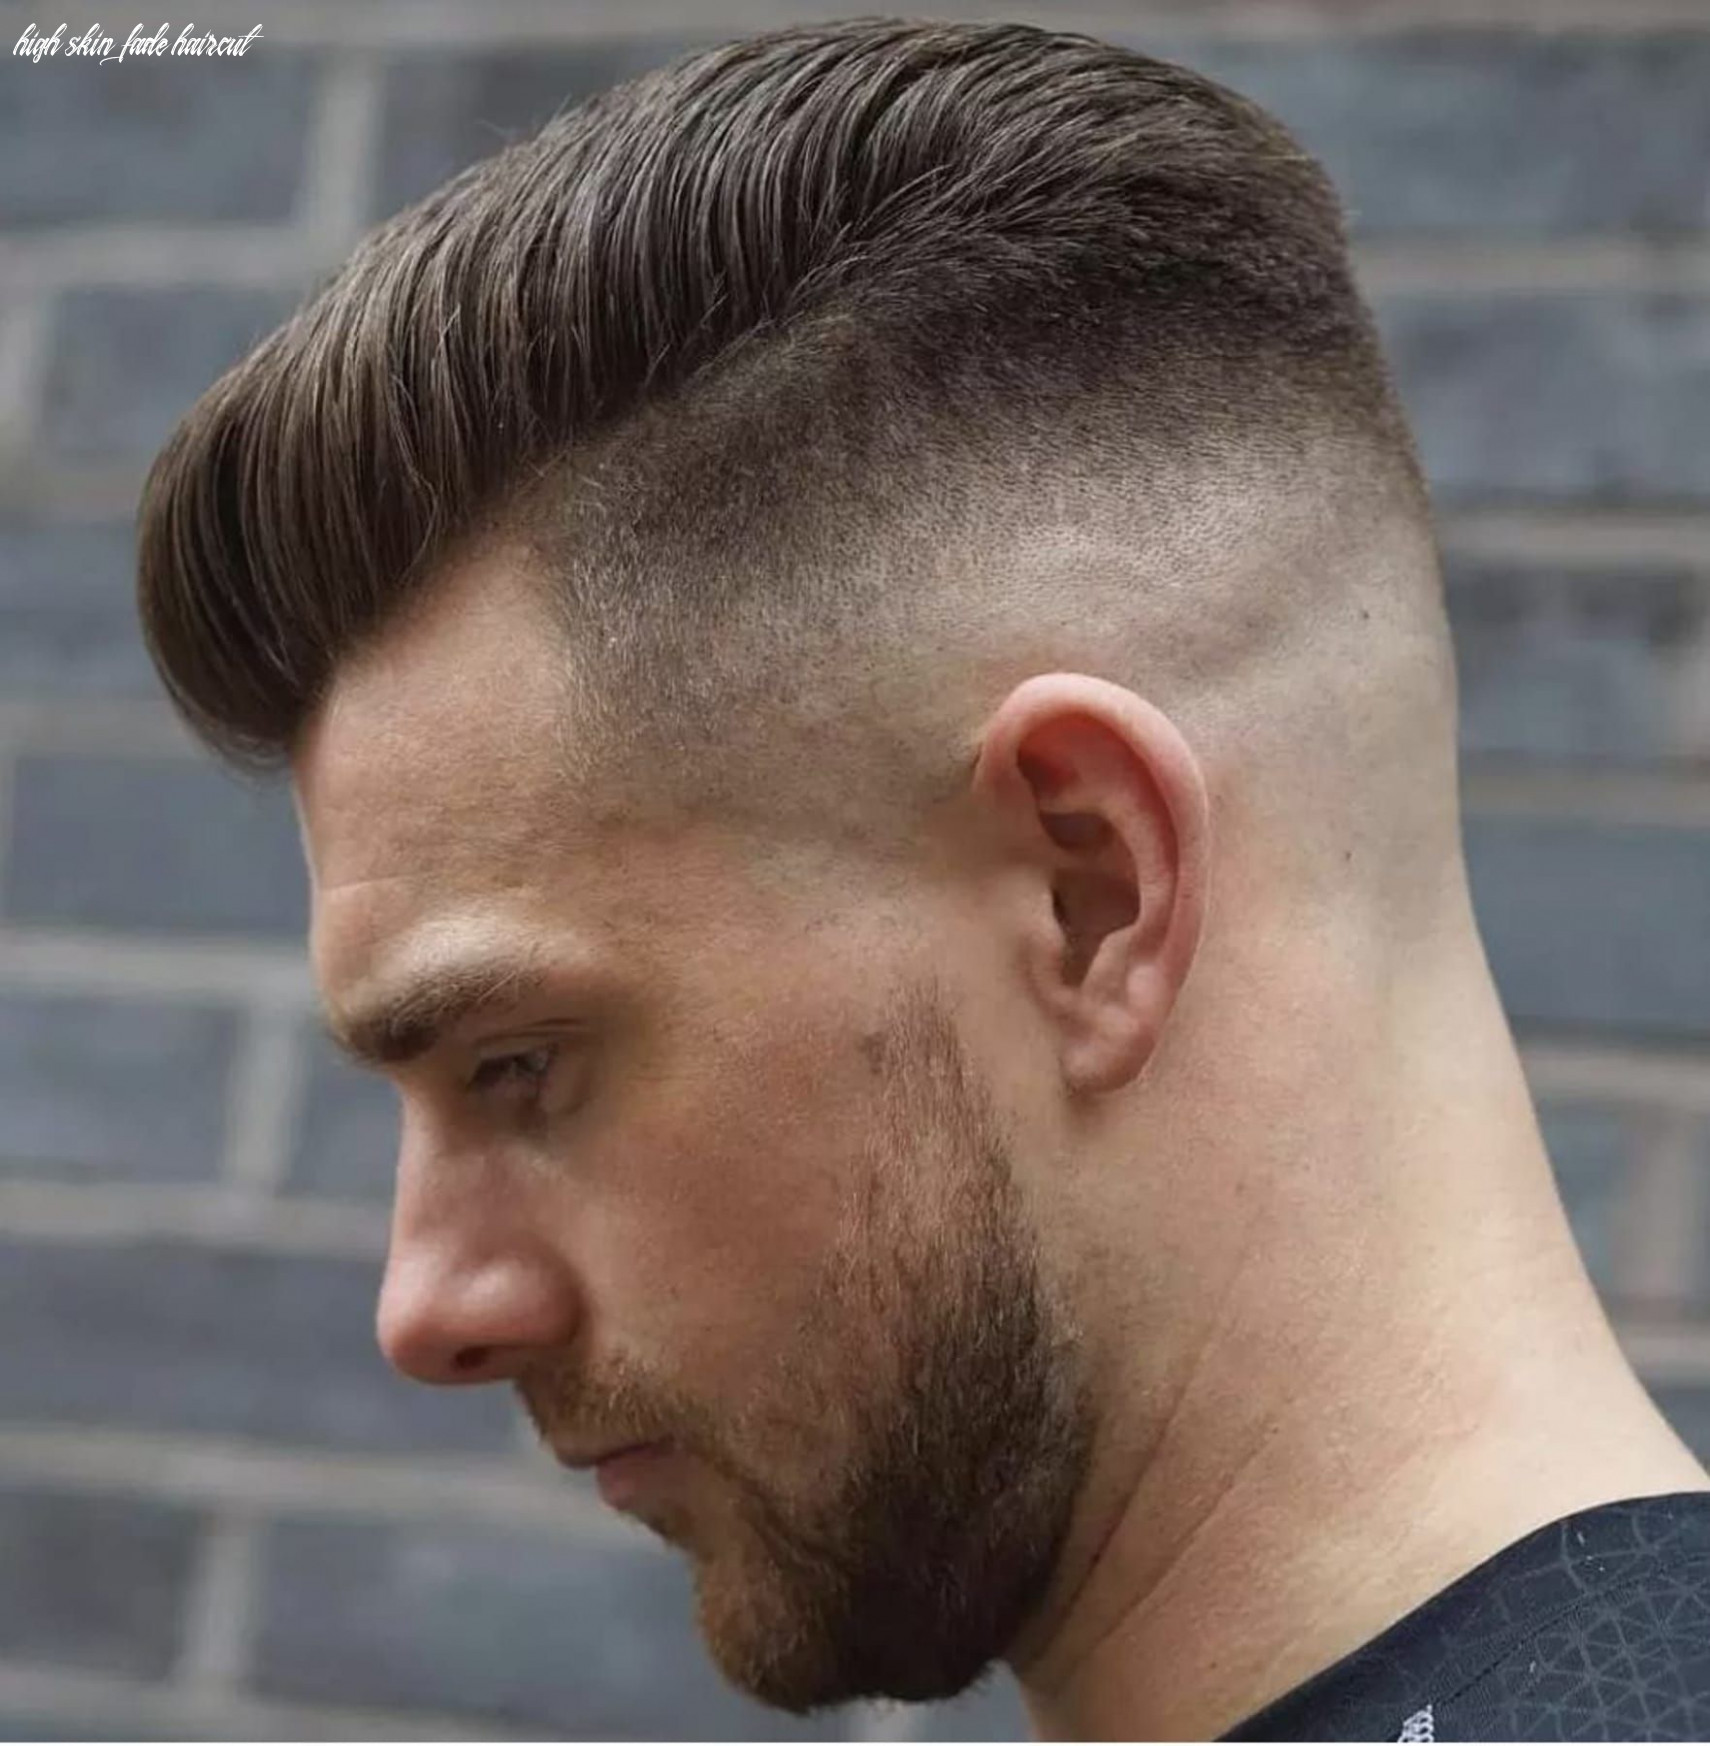 11 Best High Fade Haircut Styles | Skin fade pompadour, Mens ...